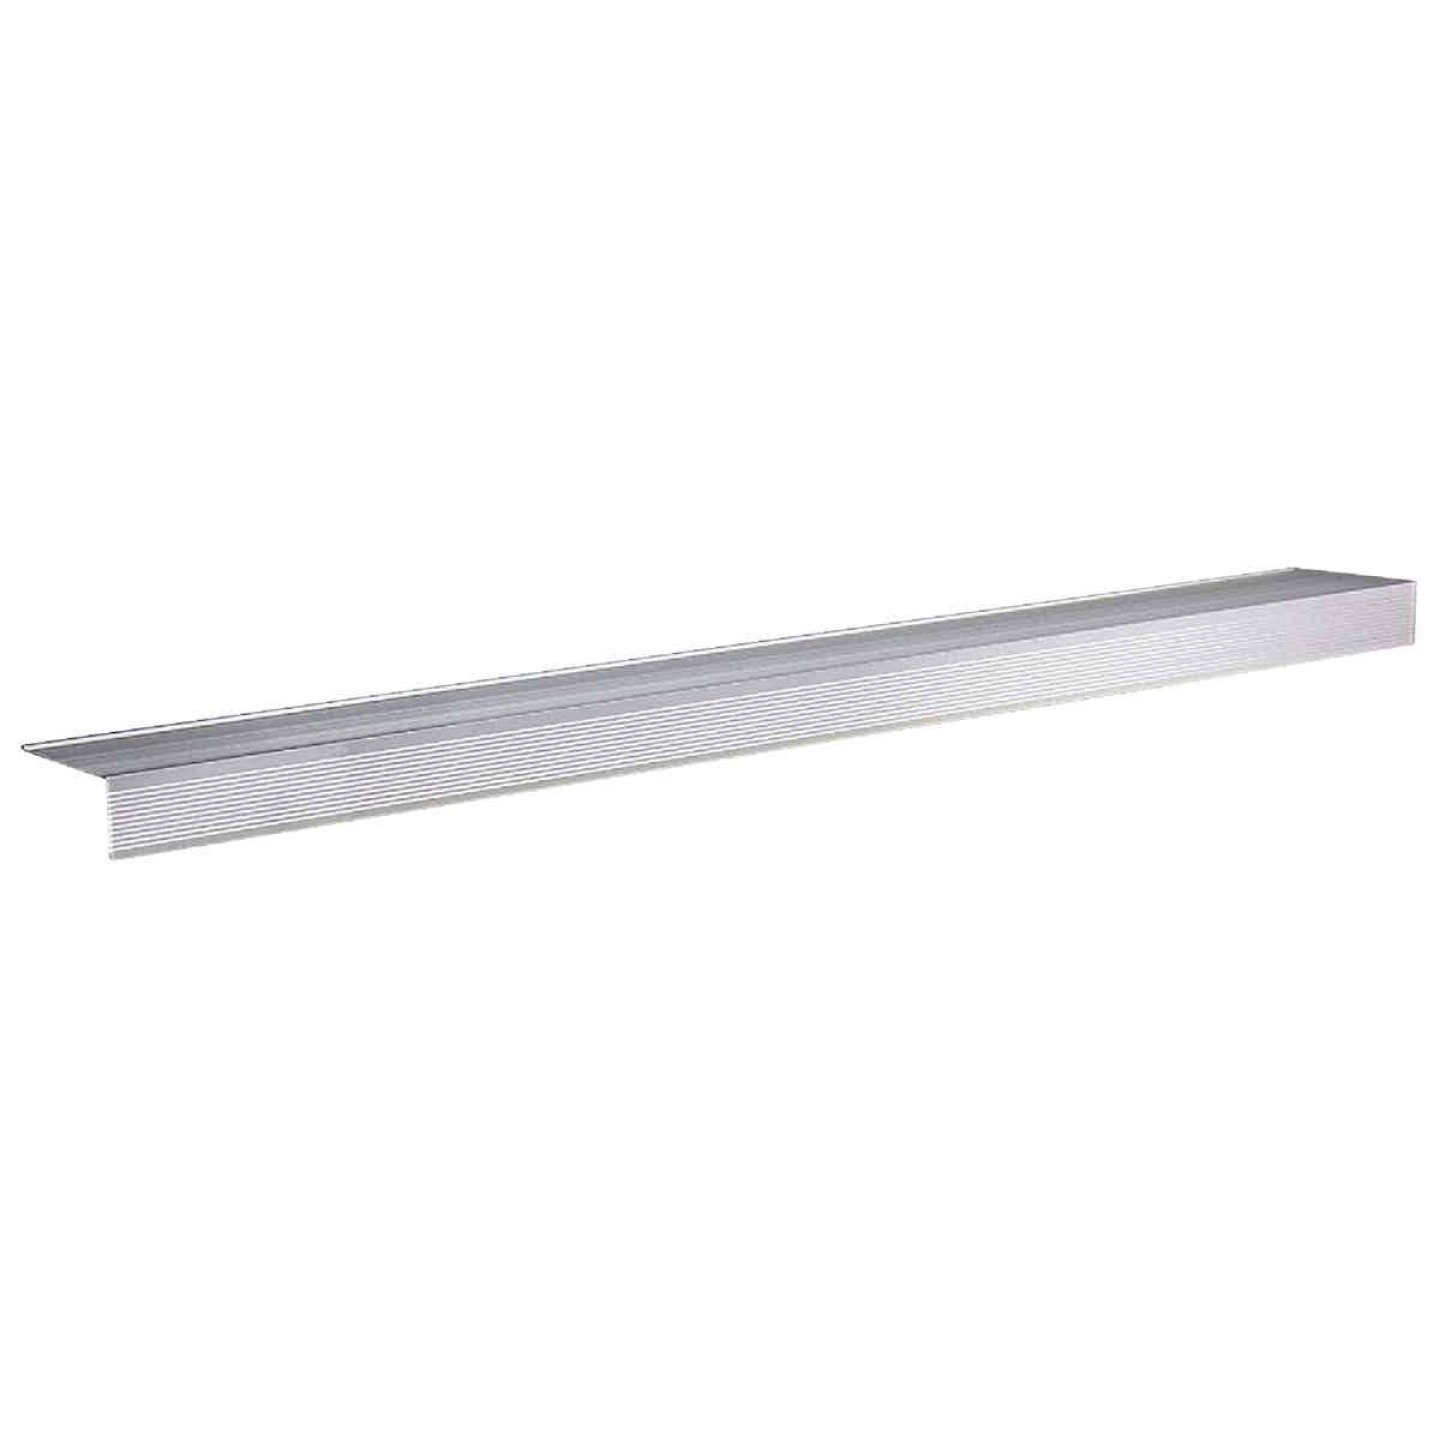 "M-D Ultra Satin nickel 72"" x 4-1/2"" Sill Nosing Image 1"